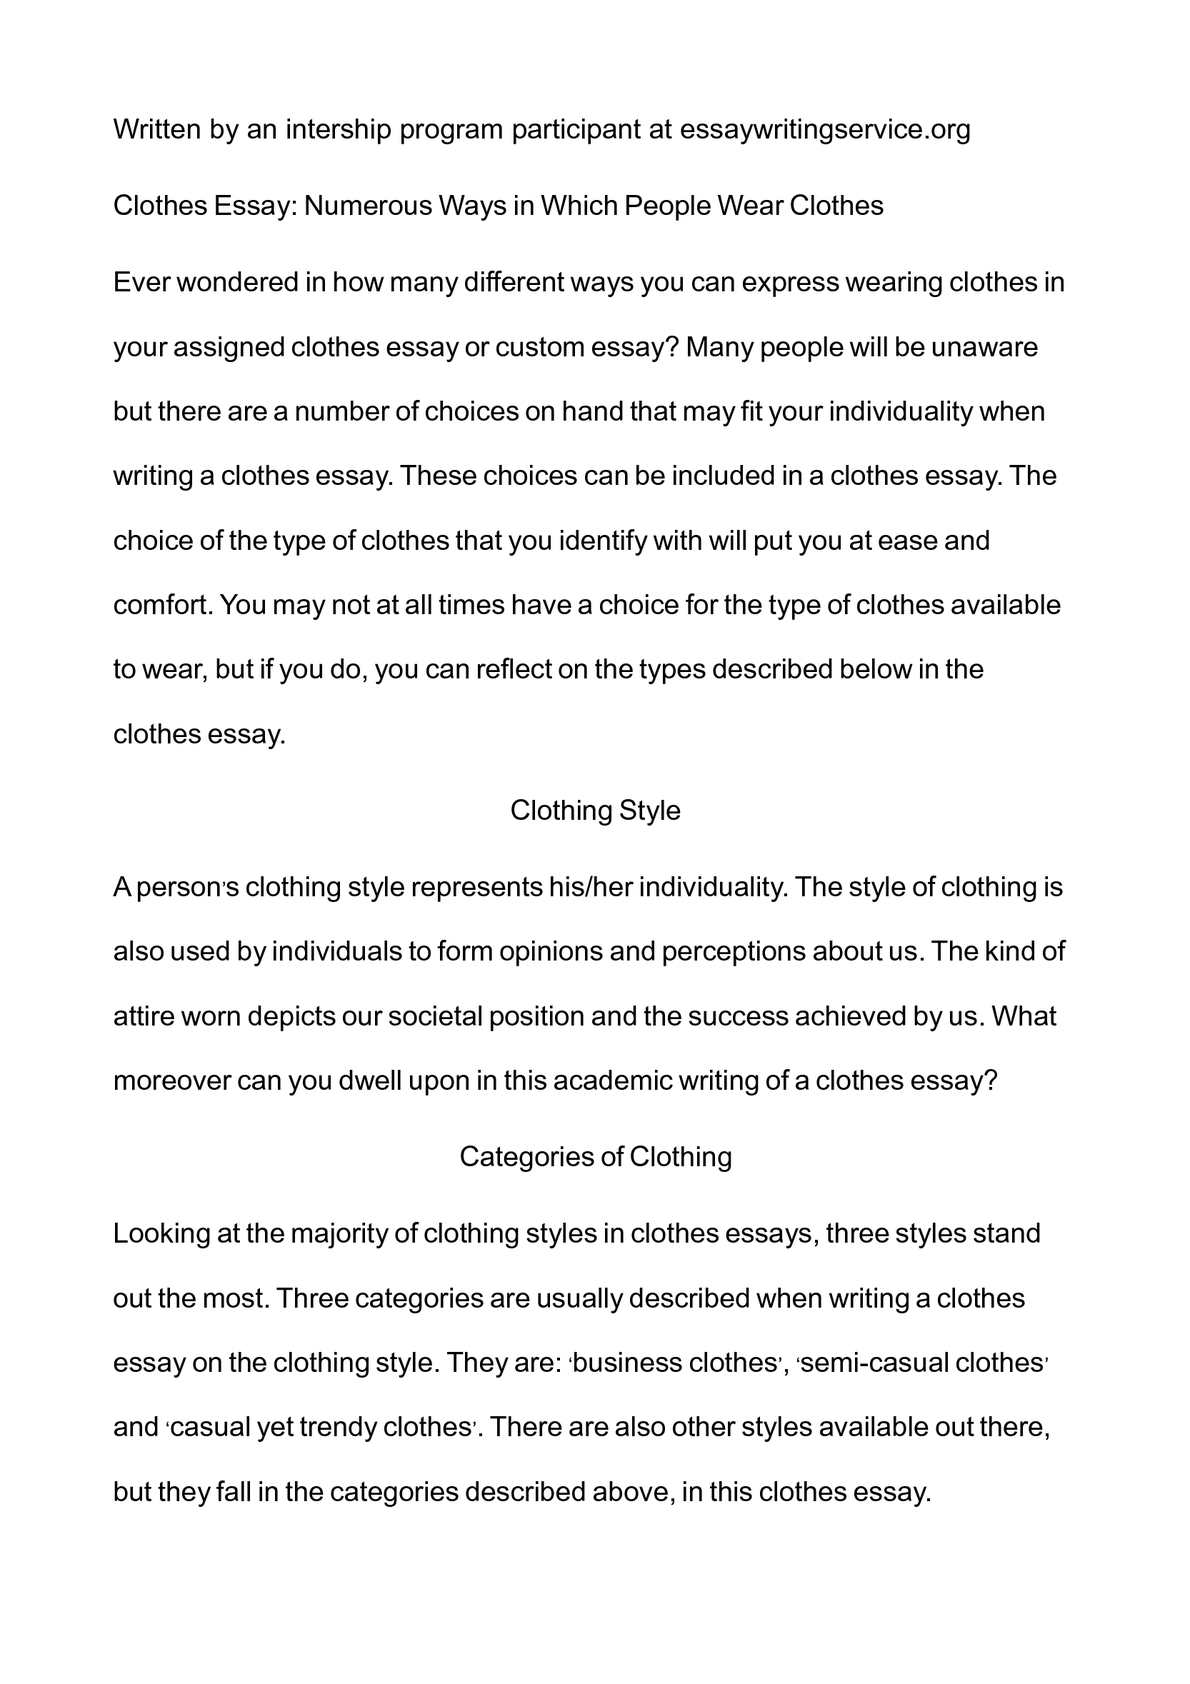 High School Graduation Essay  Thesis Essay Topics also Health Education Essay Calamo  Clothes Essay Numerous Ways In Which People Wear Clothes College Essay Paper Format